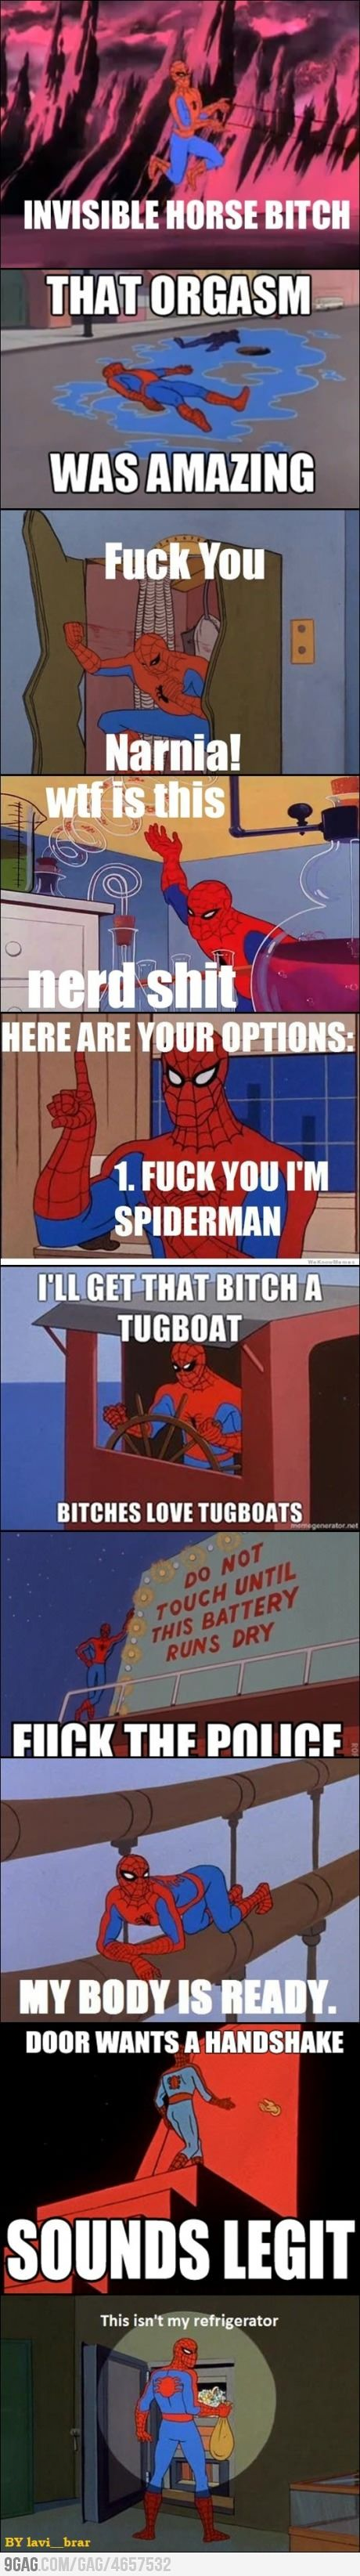 I don't know why these Spiderman things crack me up, but they do.